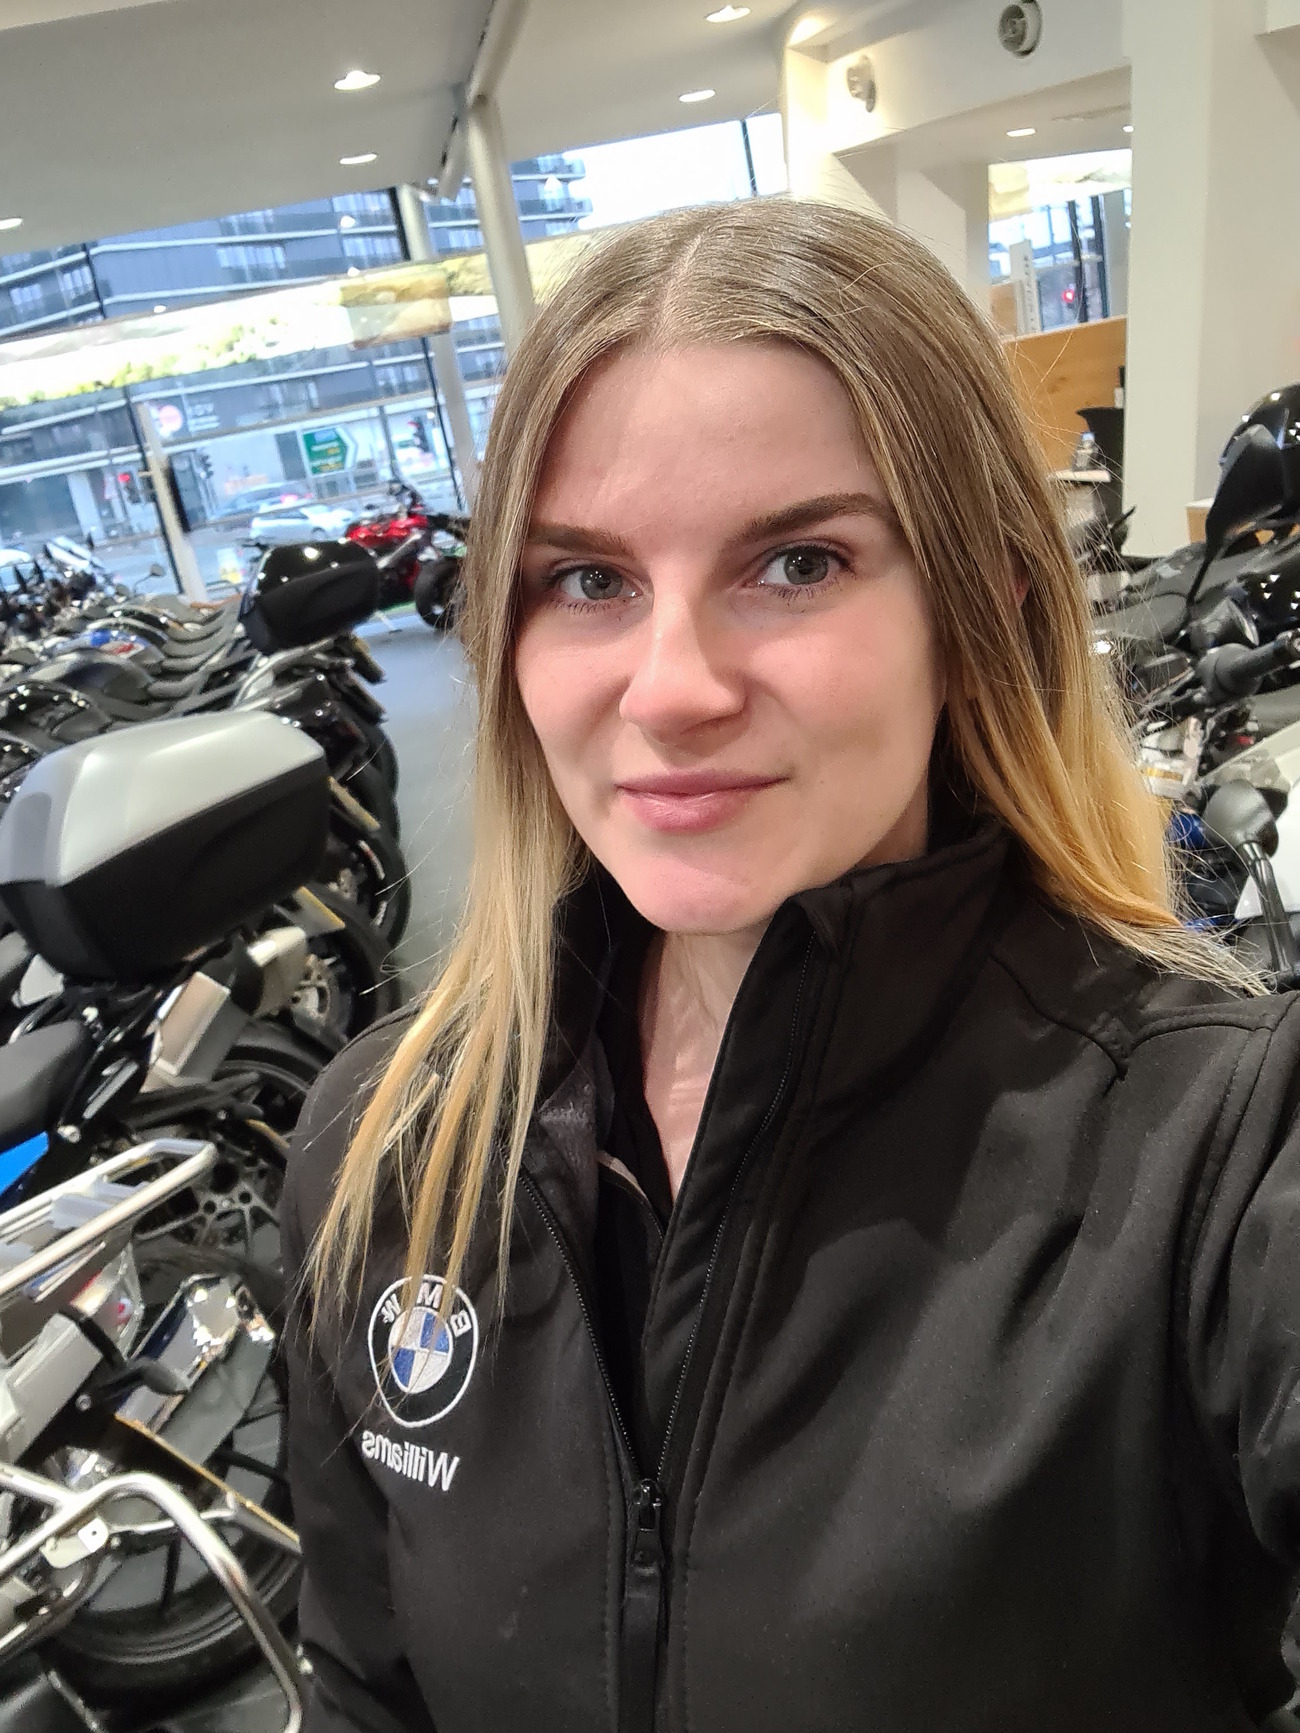 The 29-year-old at her place of work, BMW motorcycle dealership Williams Motorrad in Manchester